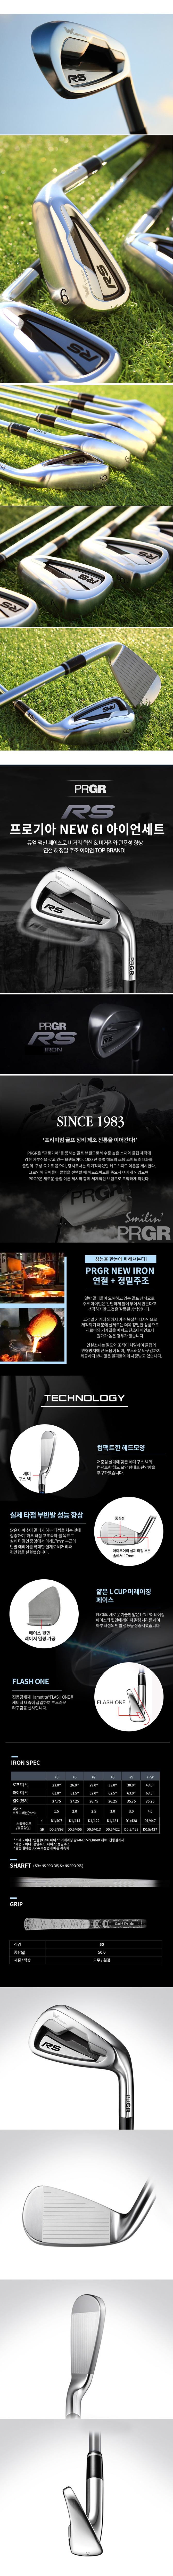 prgr_rs_new_iron_19.jpg